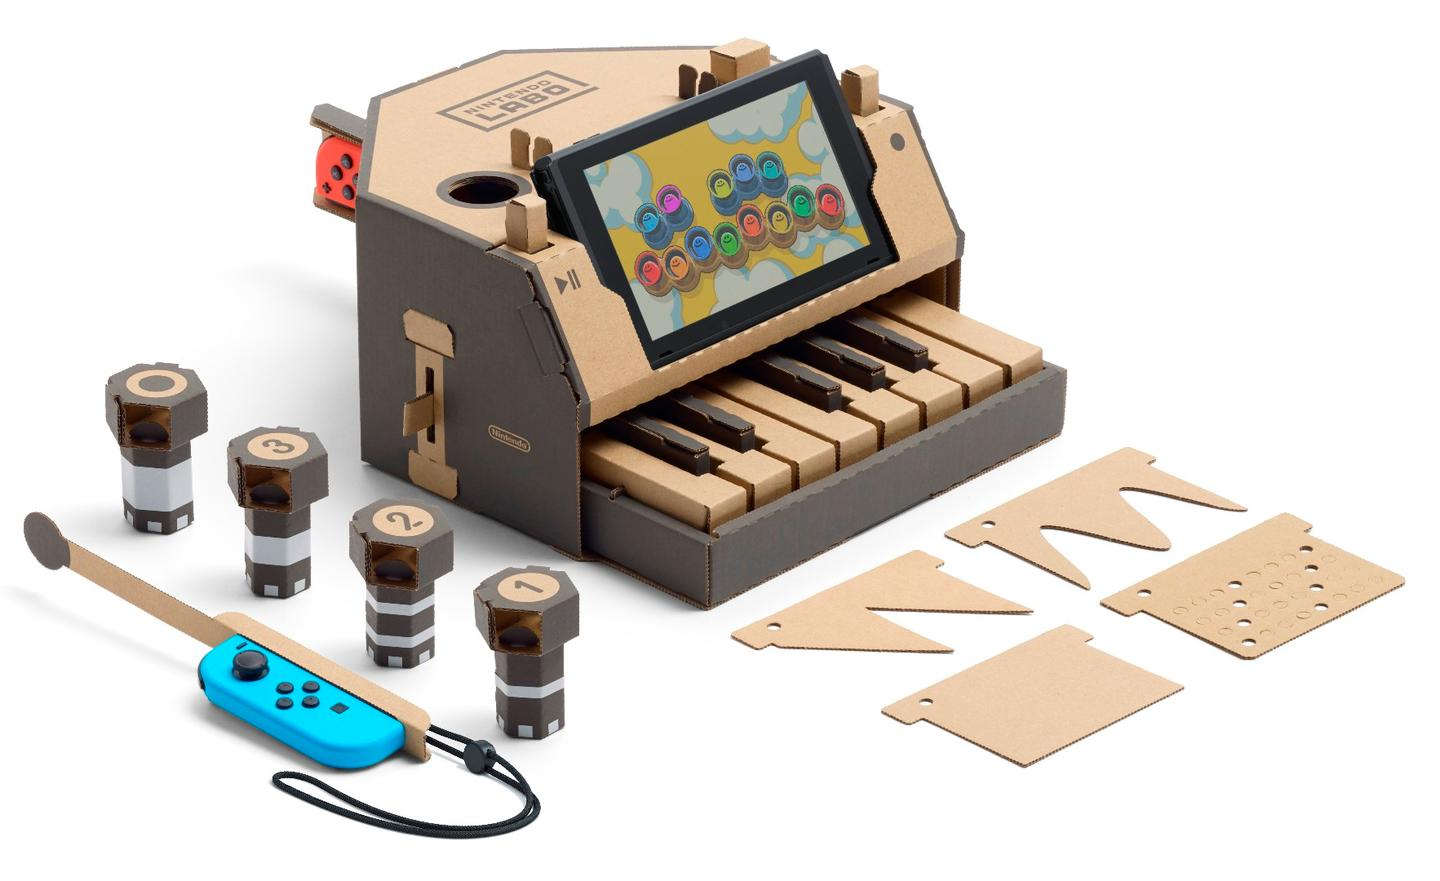 The Nintendo Labo Toy-Con Piano plays different tones for different keys